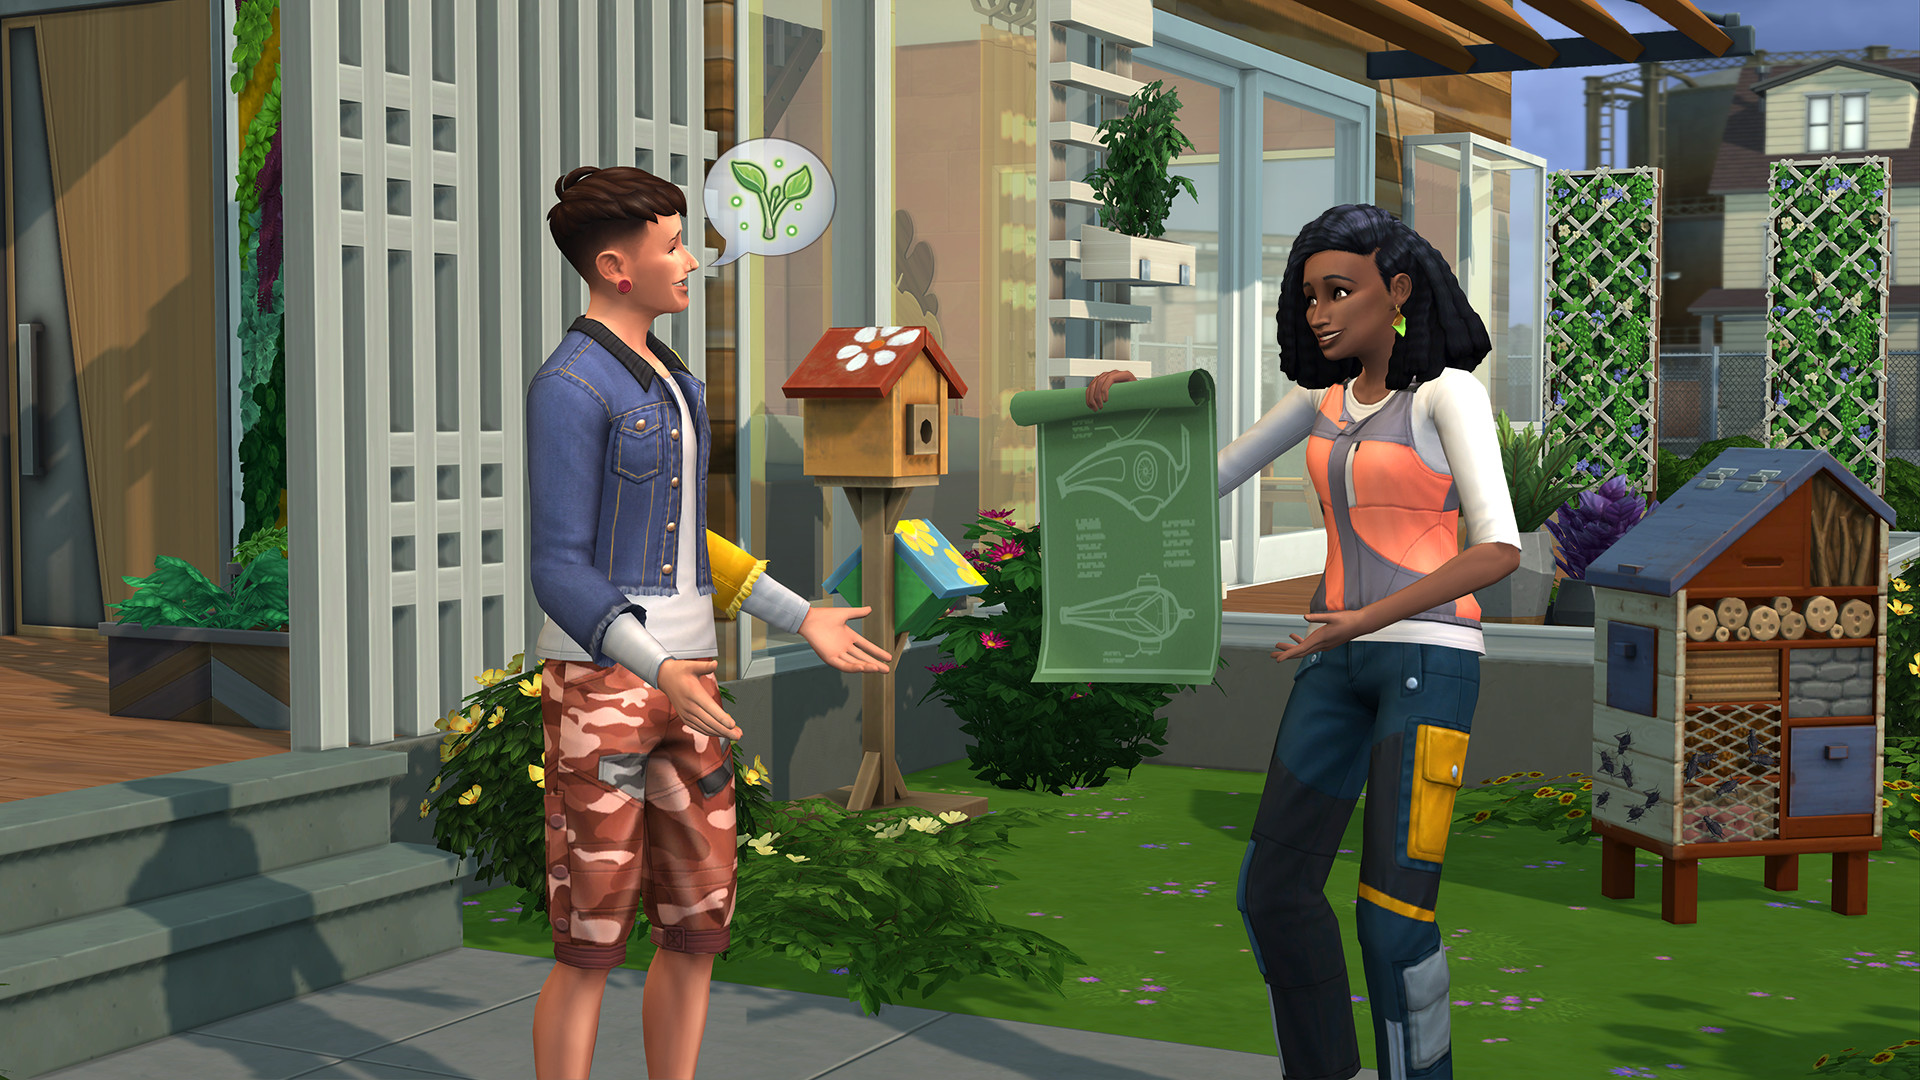 The Sims 4 Eco Lifestyle Screenshot 1